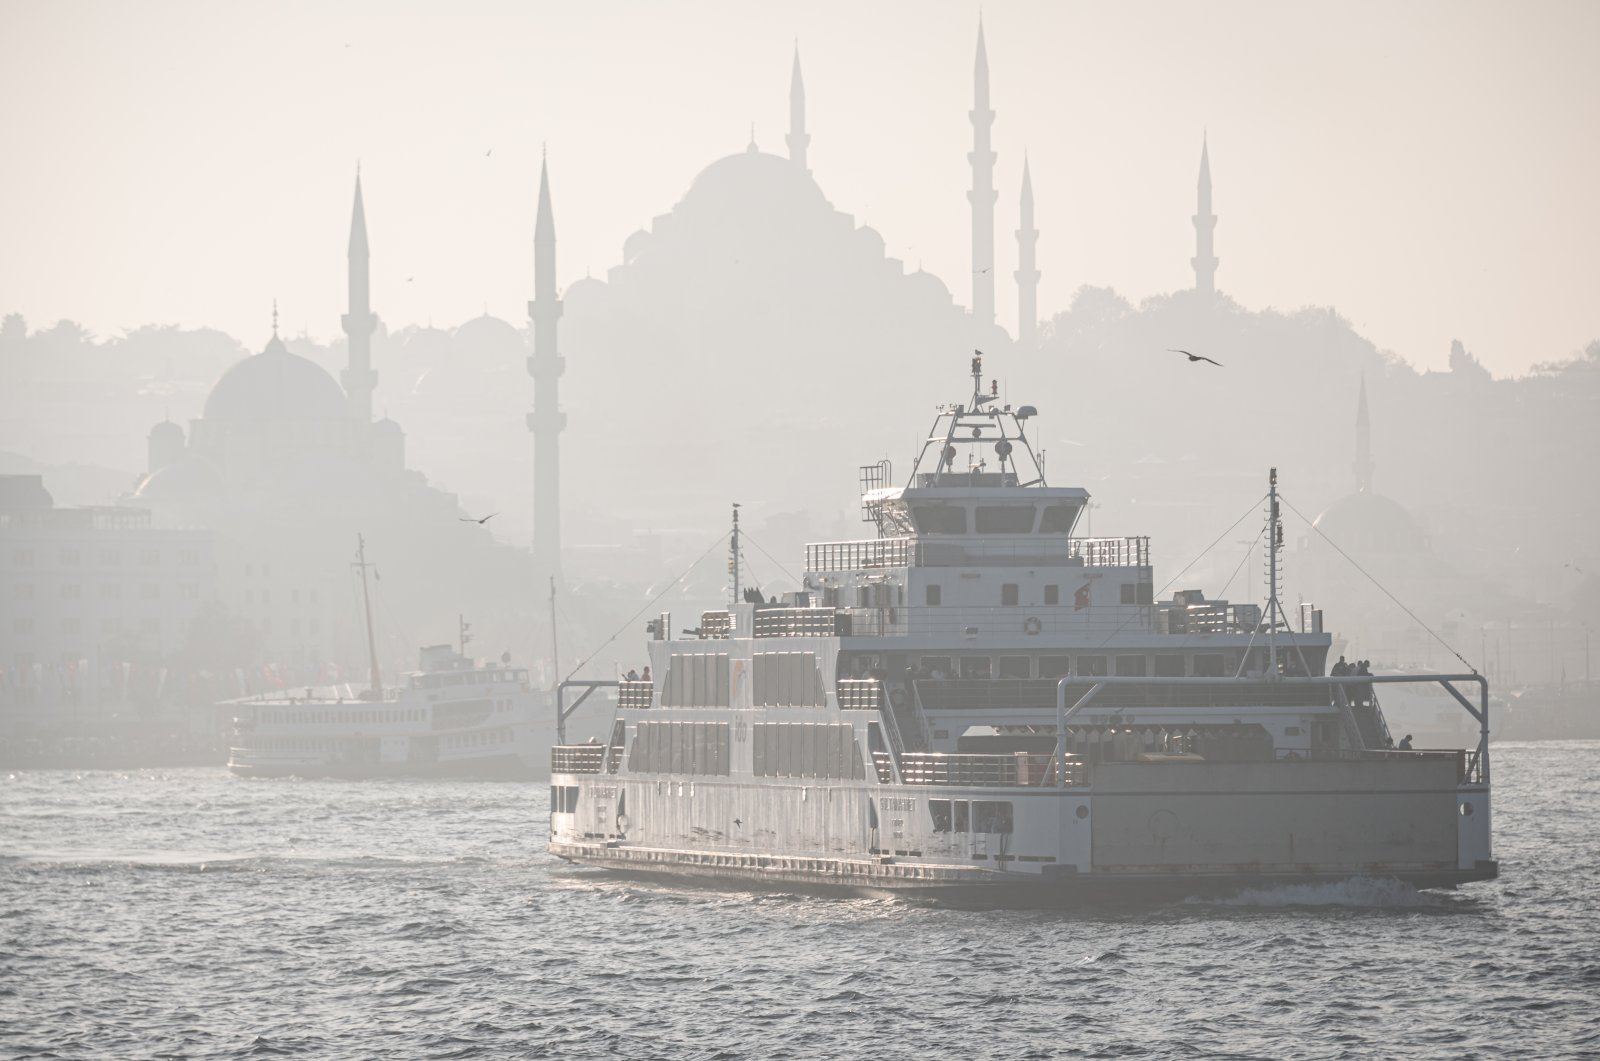 A high concentration of air pollution lowered visibility, making dramatic sights of the historic mosques in the Fatih district as ferries follow their normal routes along the Golden Horn, Istanbul, Turkey, Oct. 24, 2021. (Photo by Getty Images)